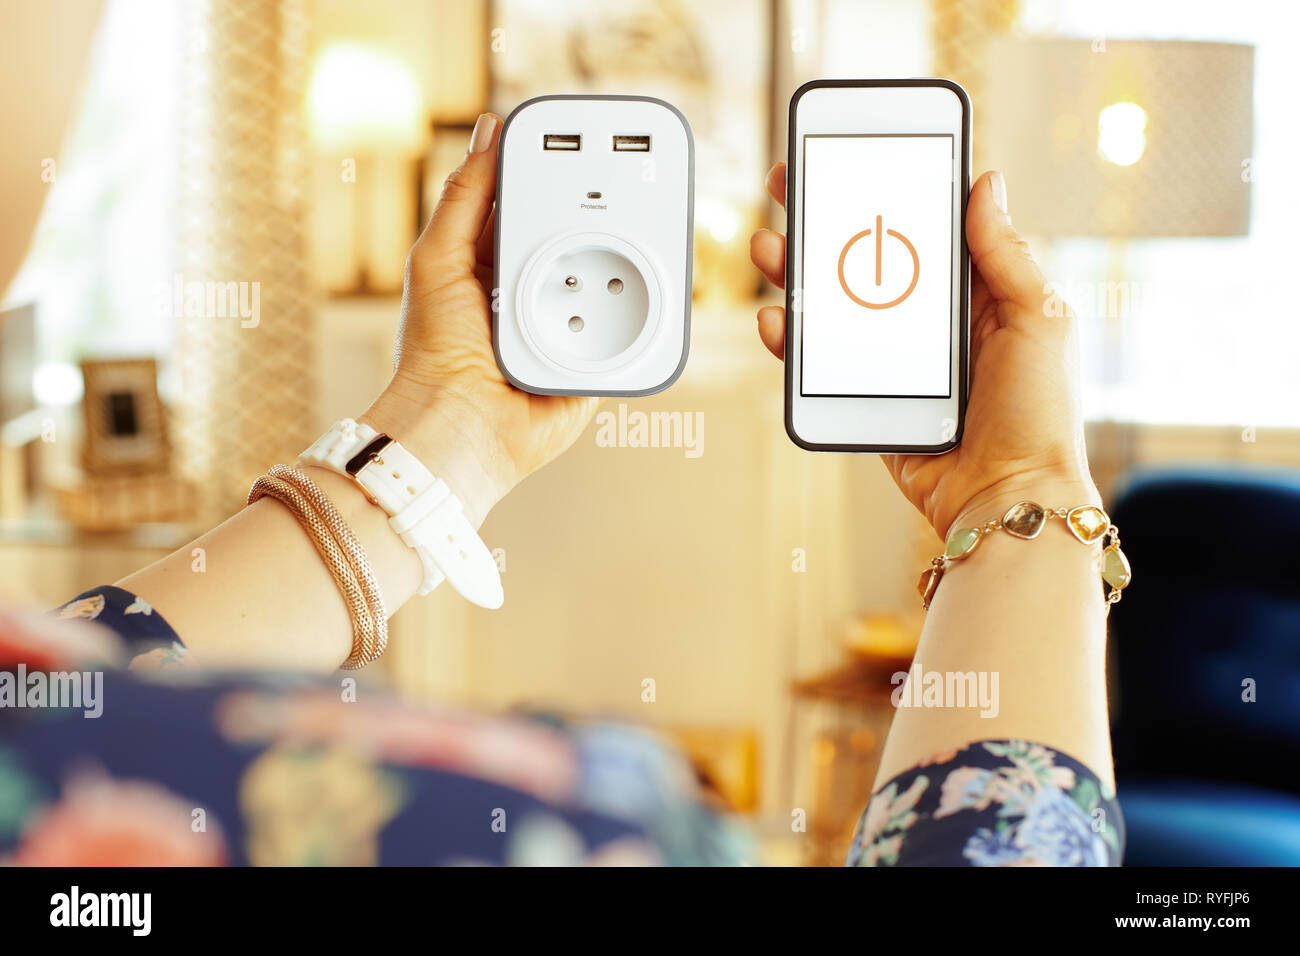 Closeup on smartphone with smart home app and wifi smart plug in